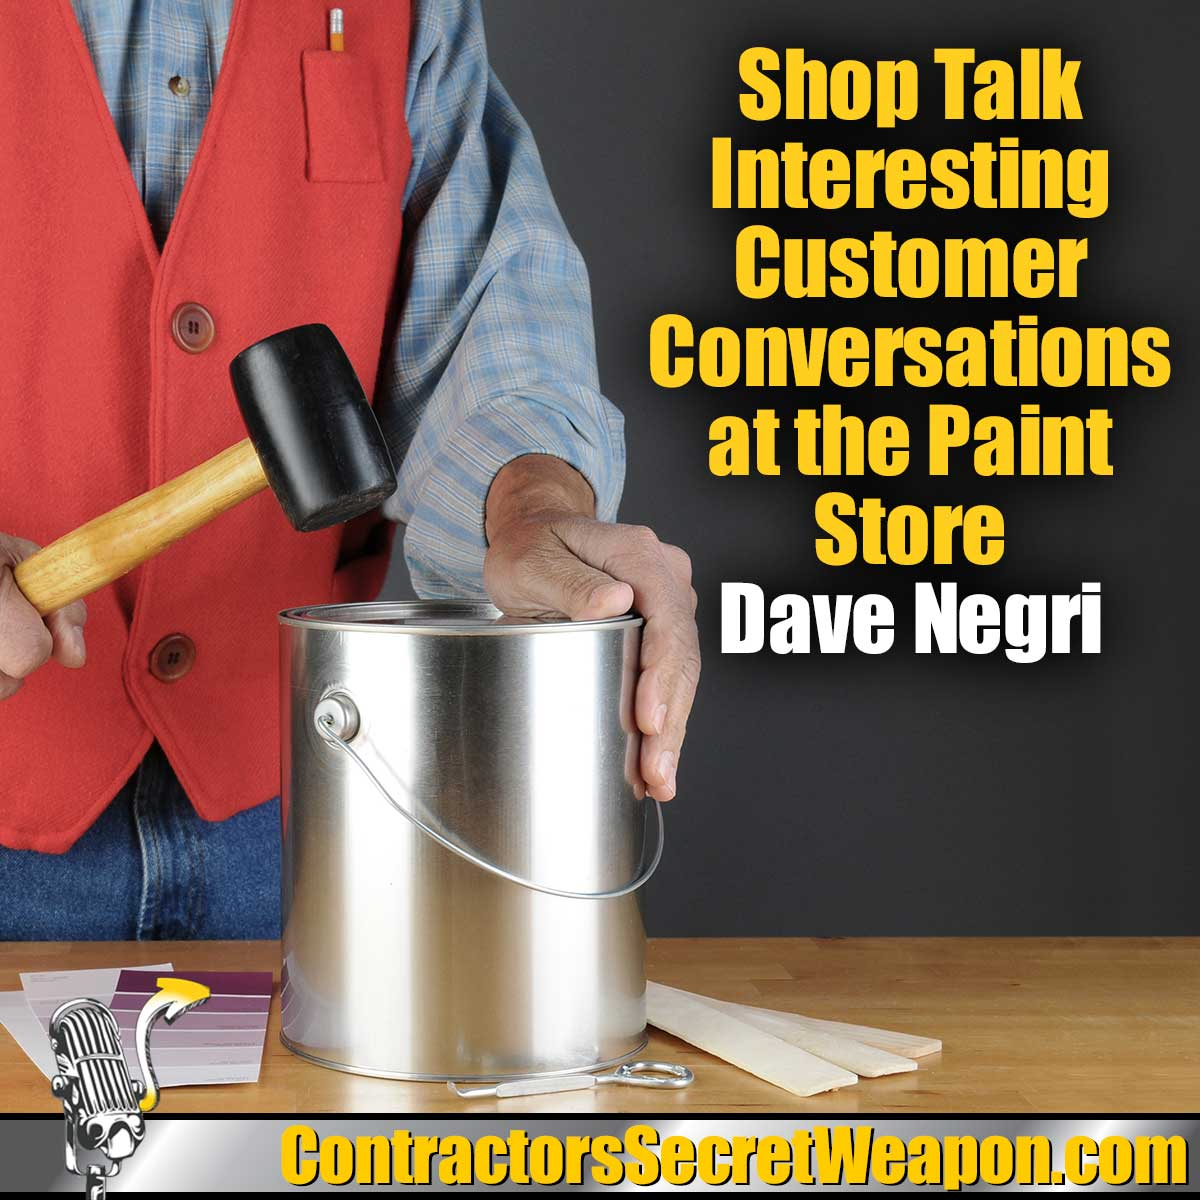 Crazy Conversations About Customers at the Paint Store. 148